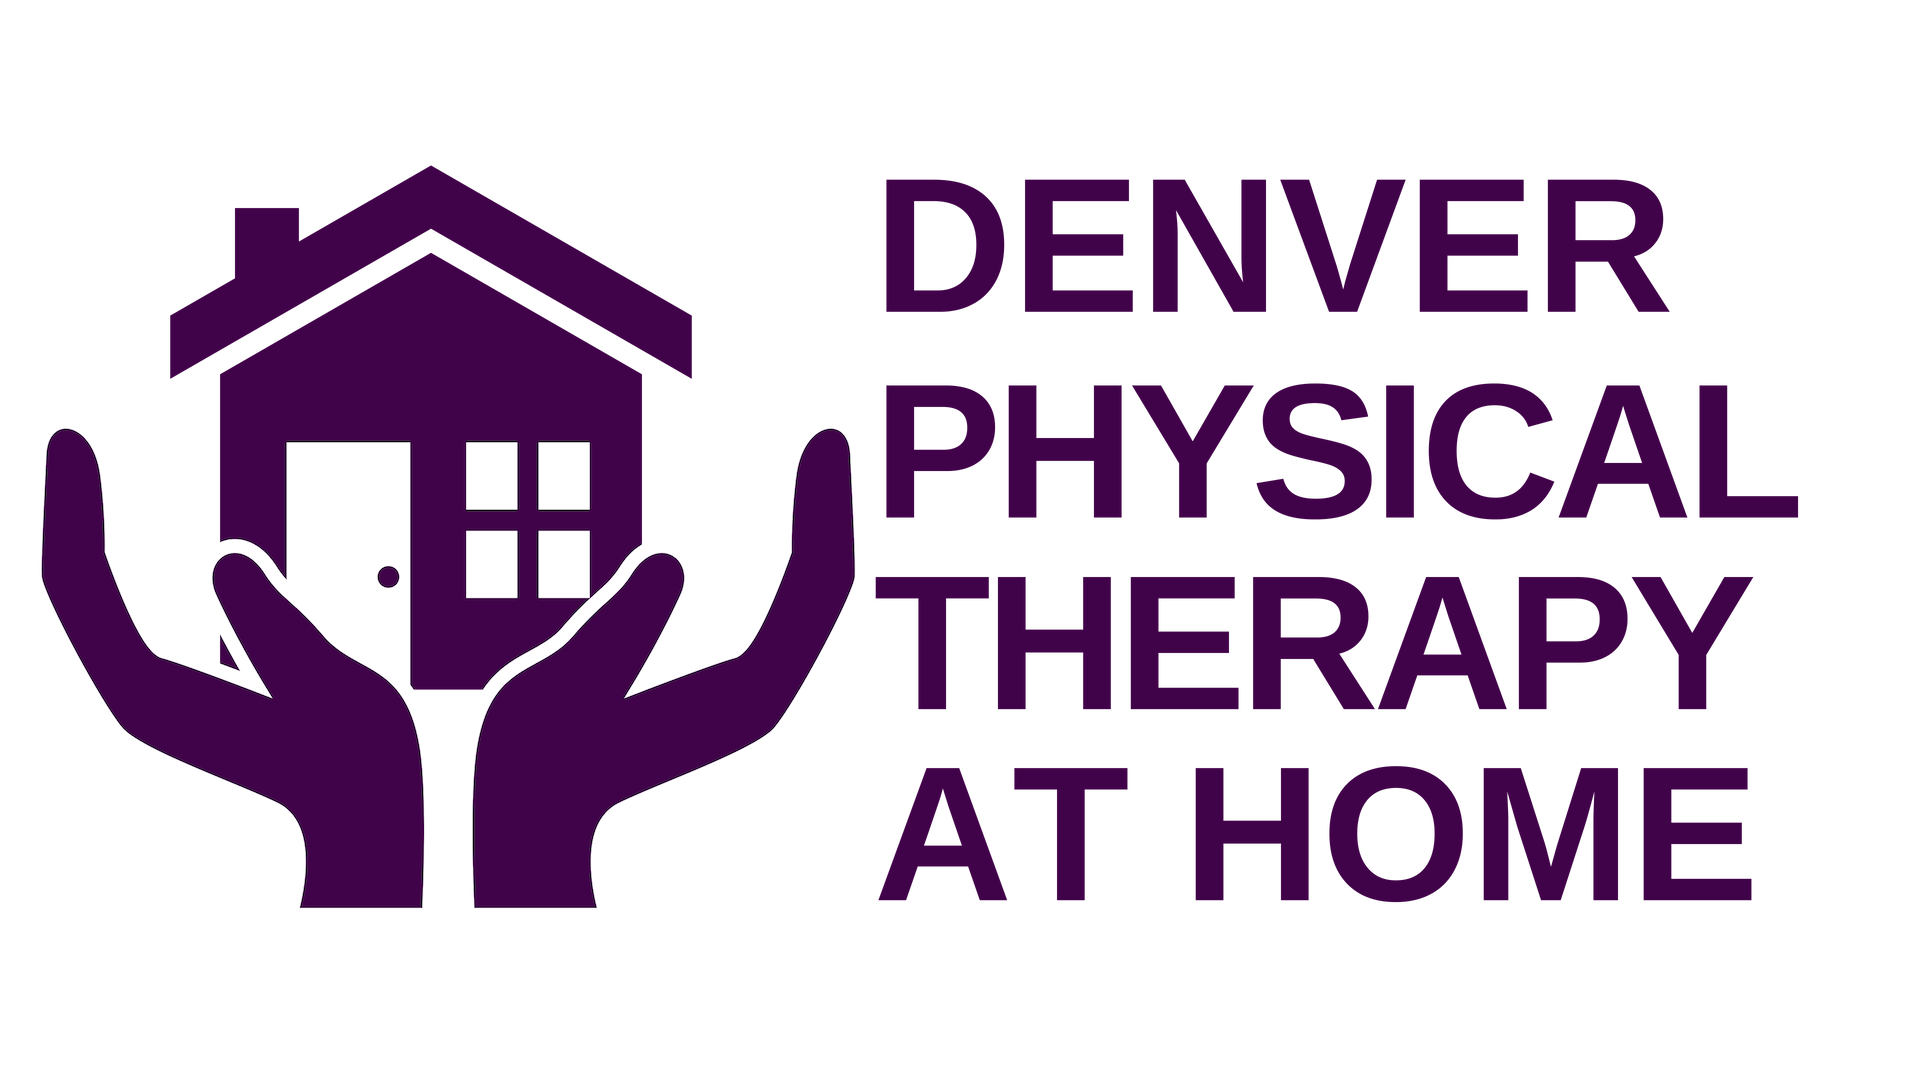 Denver Physical Therapy at Home